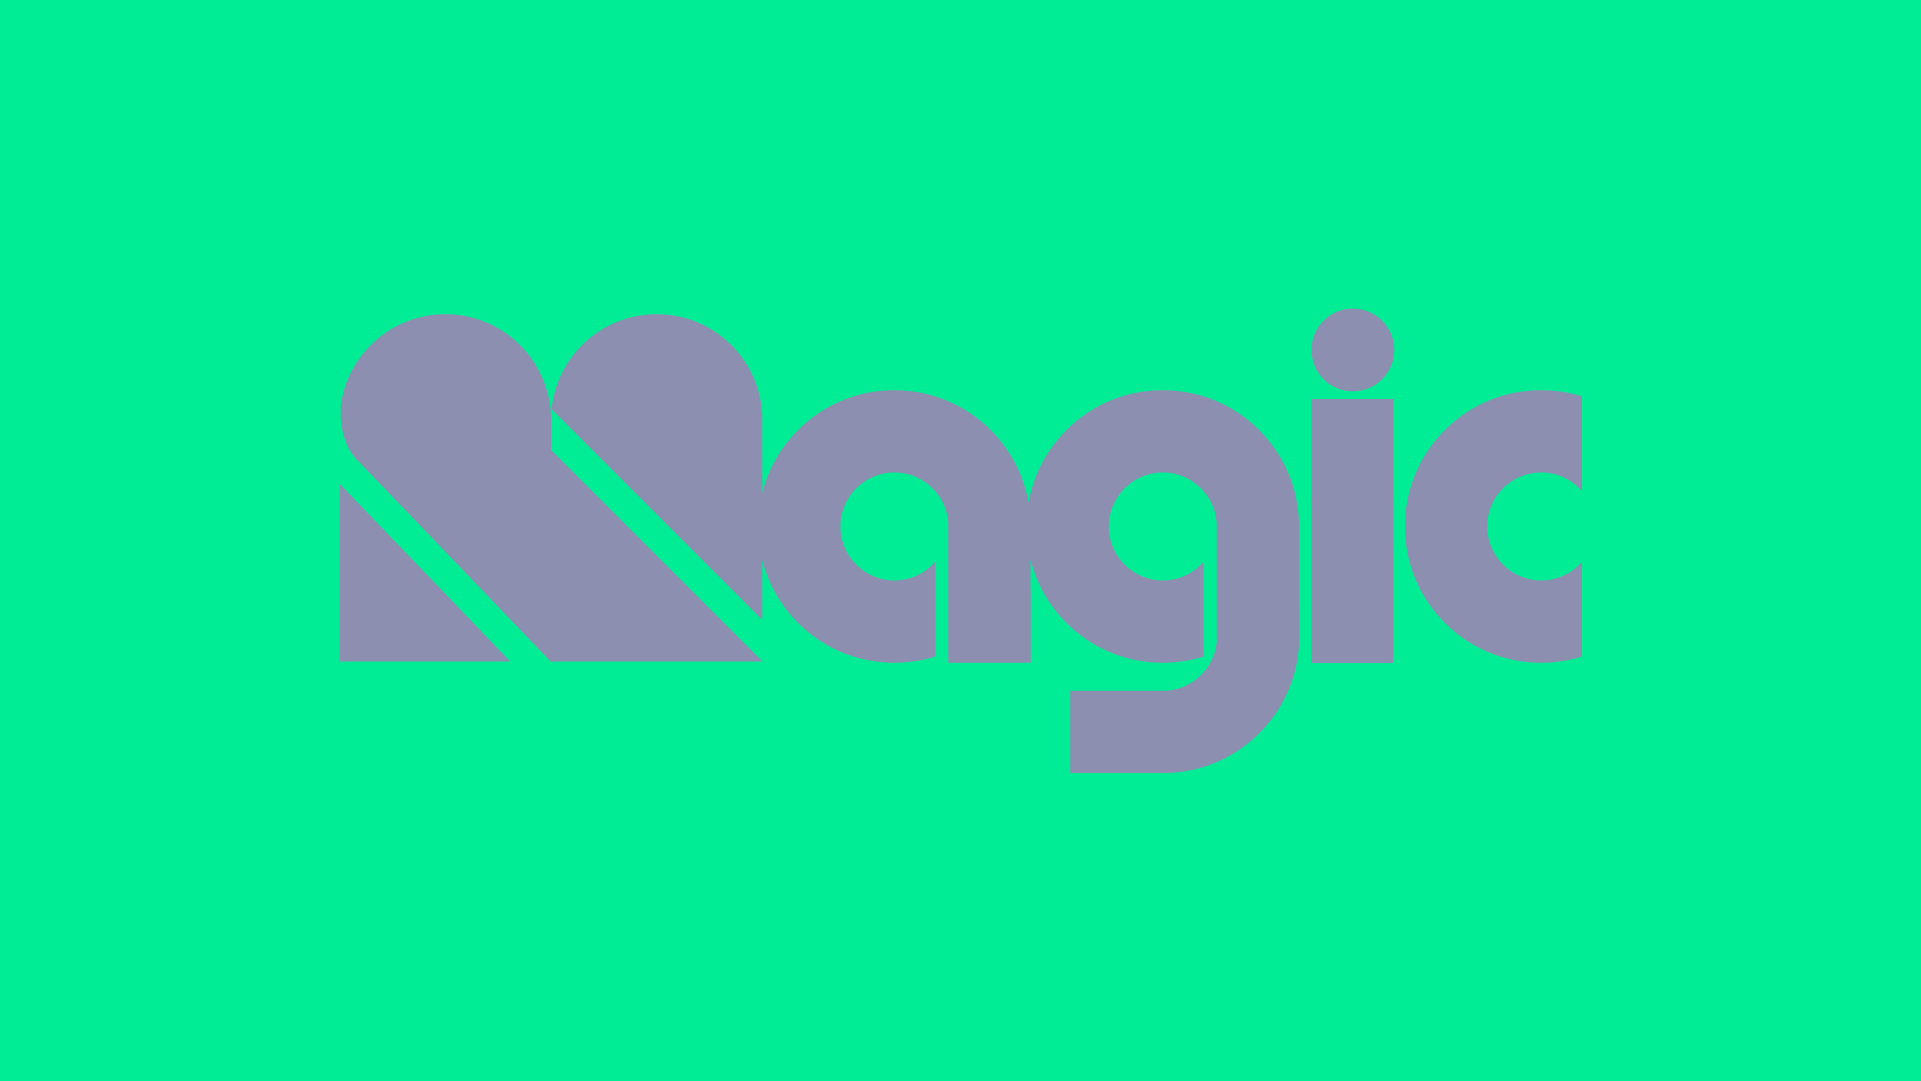 MagicNumbers_LogoType_Justin Harder_06.png